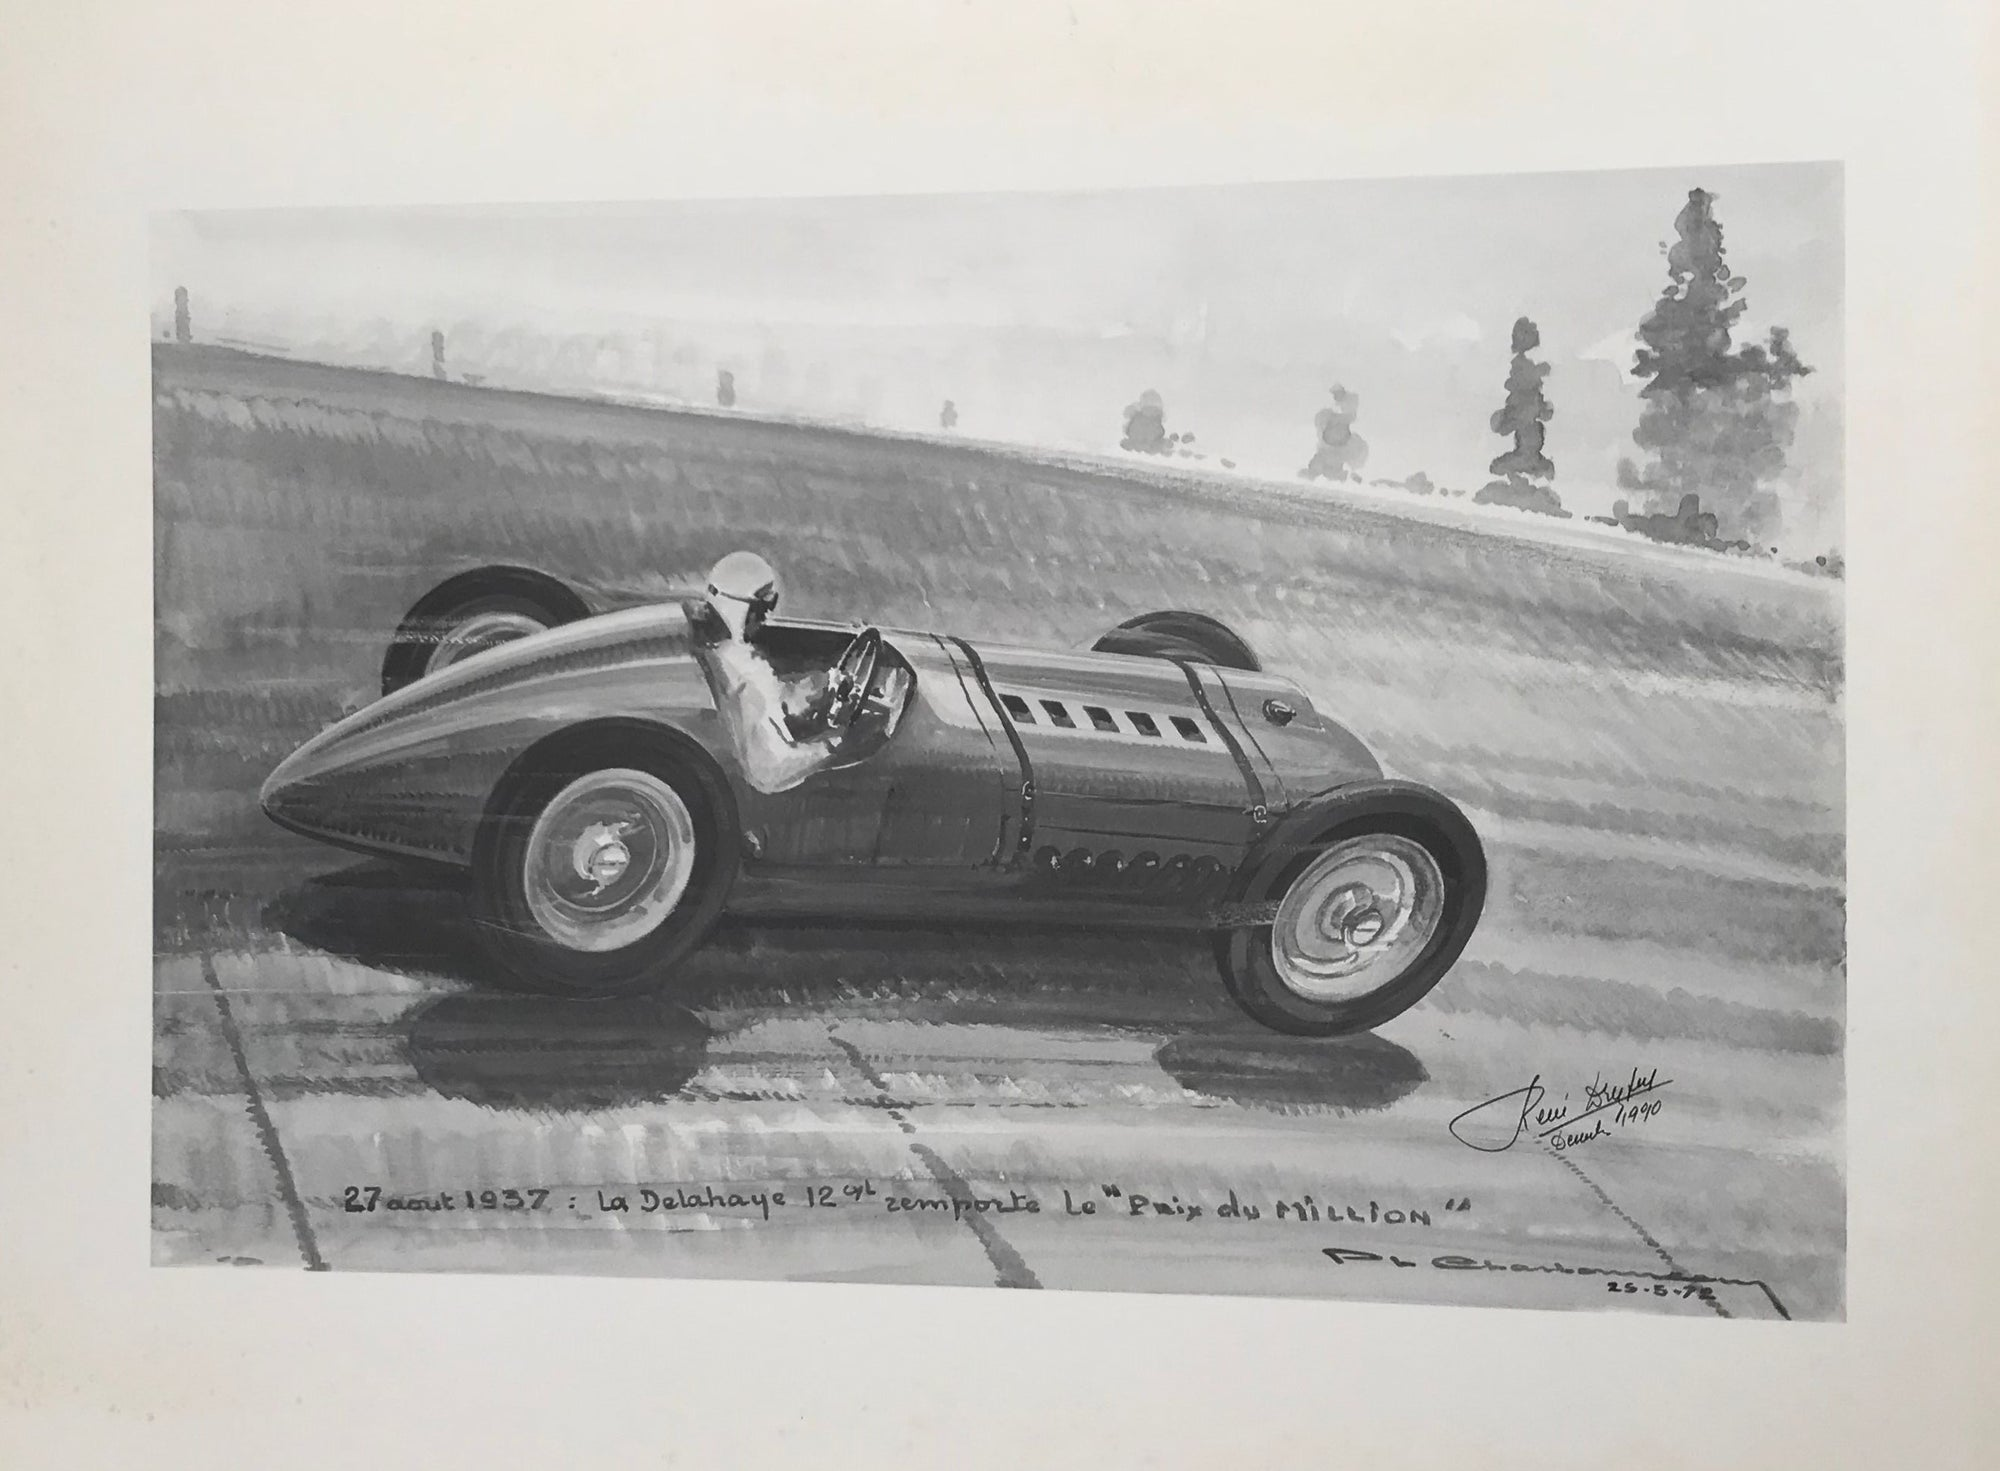 The 12 cylinder Delahaye of Rene Dreyfus, autographed by Rene' Dreyfus, Print by Charbonneaux